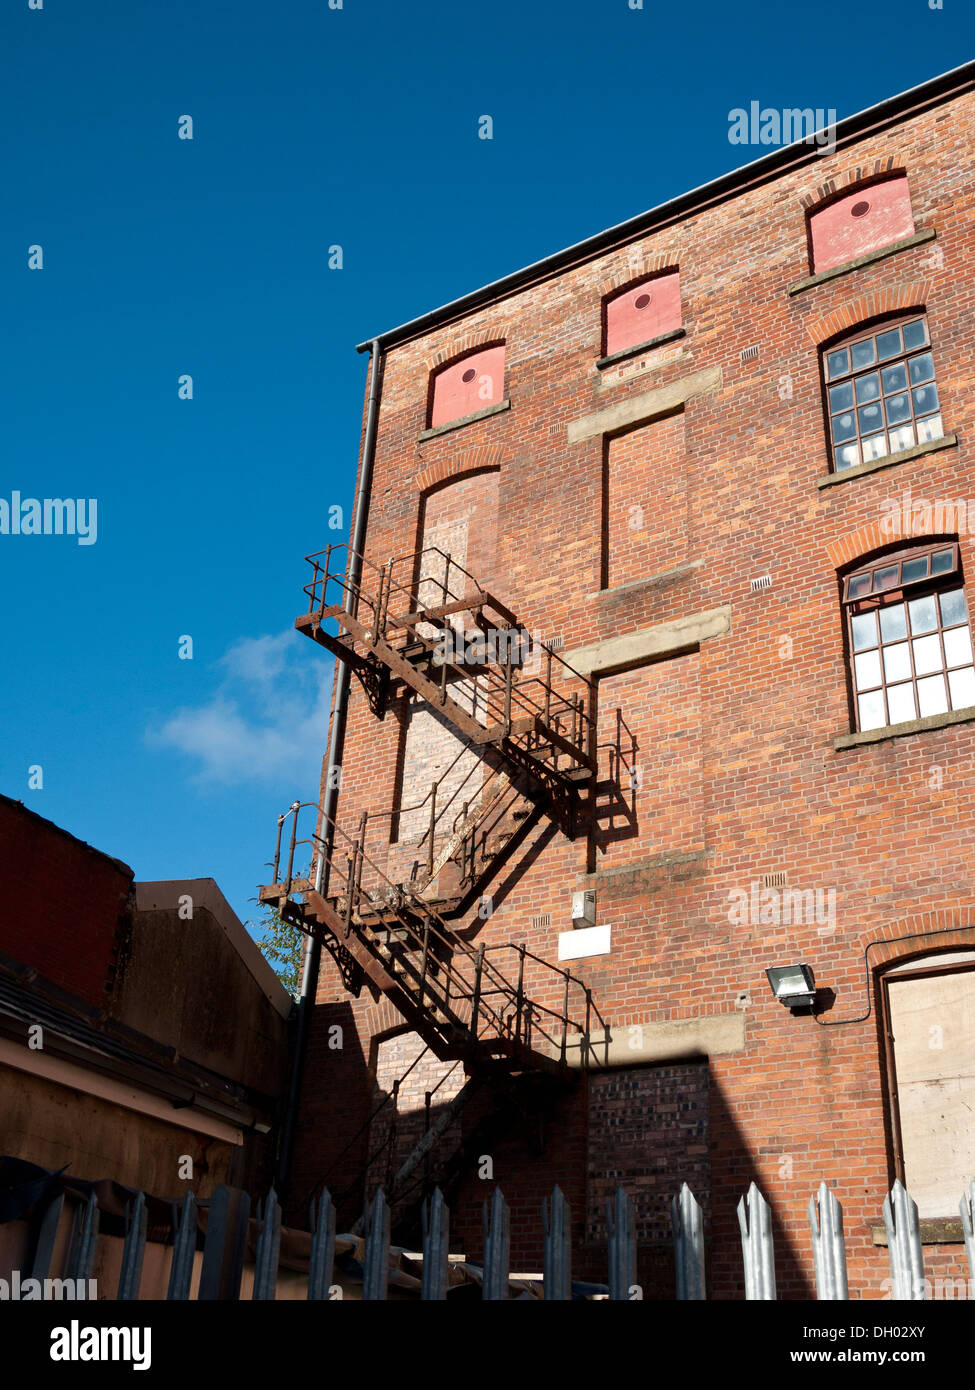 Fire escape from bricked up doorway to ground level on an old warehouse. Oldham Greater Manchester UK. & Fire escape from bricked up doorway to ground level on an old ... Pezcame.Com